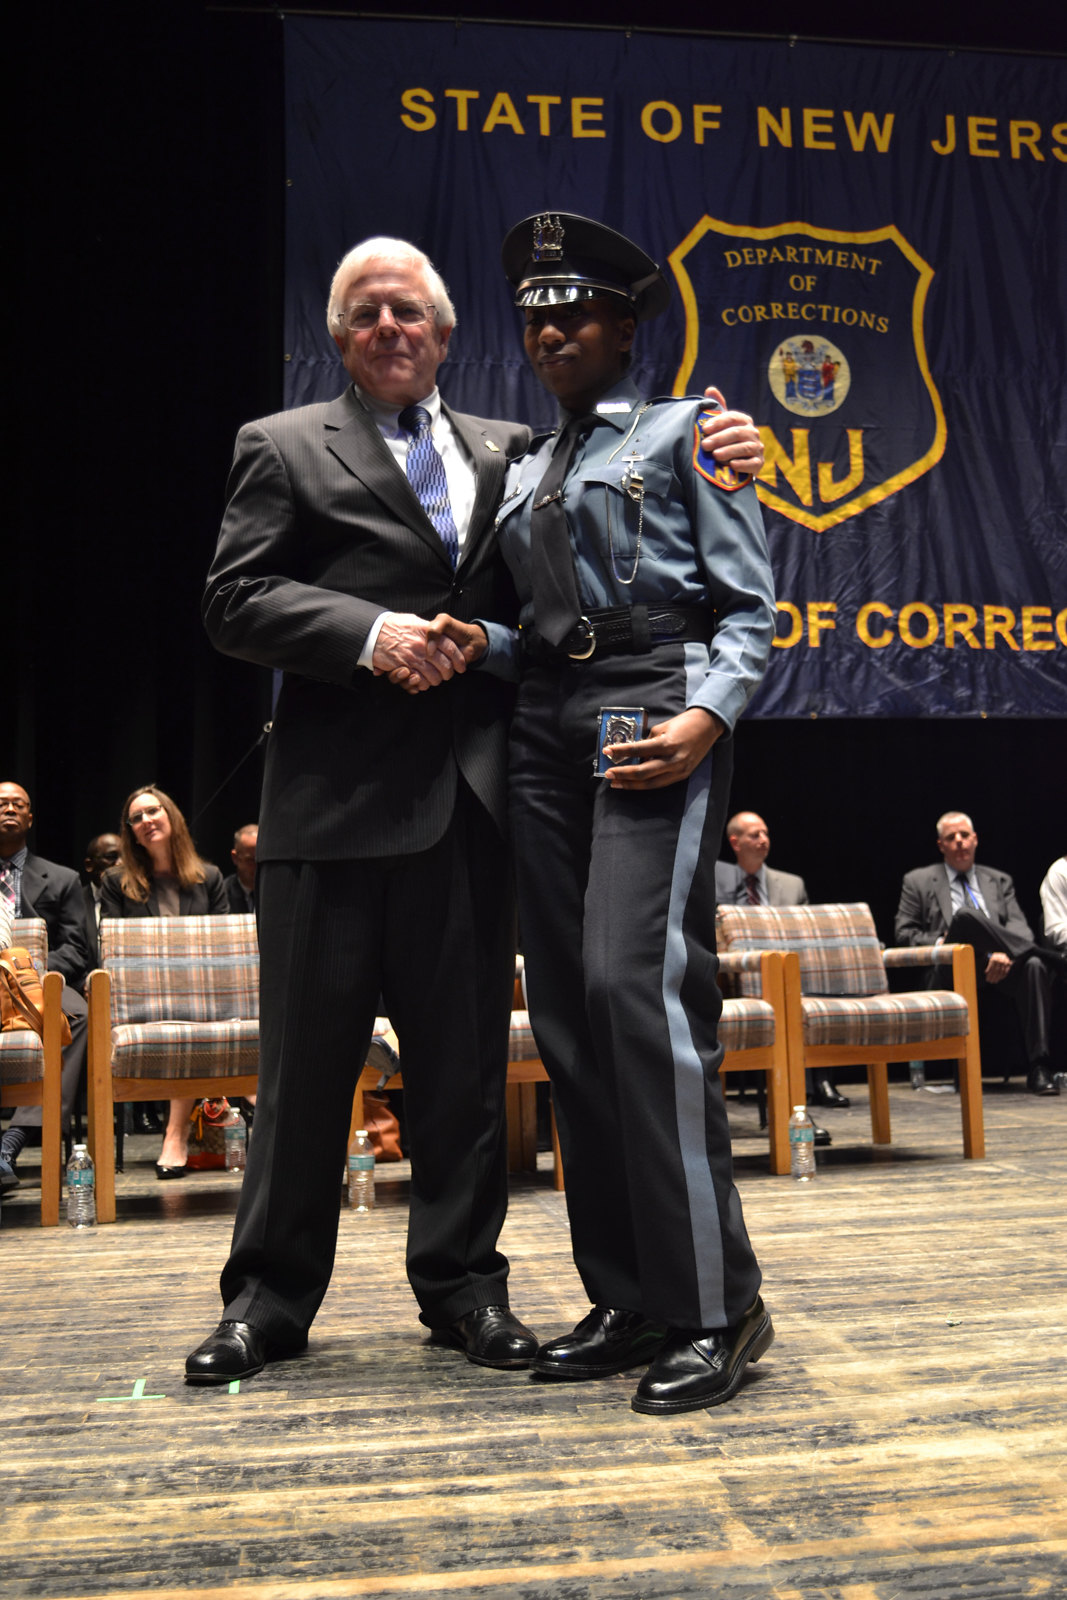 New Jersey Department Of Corrections Flickr